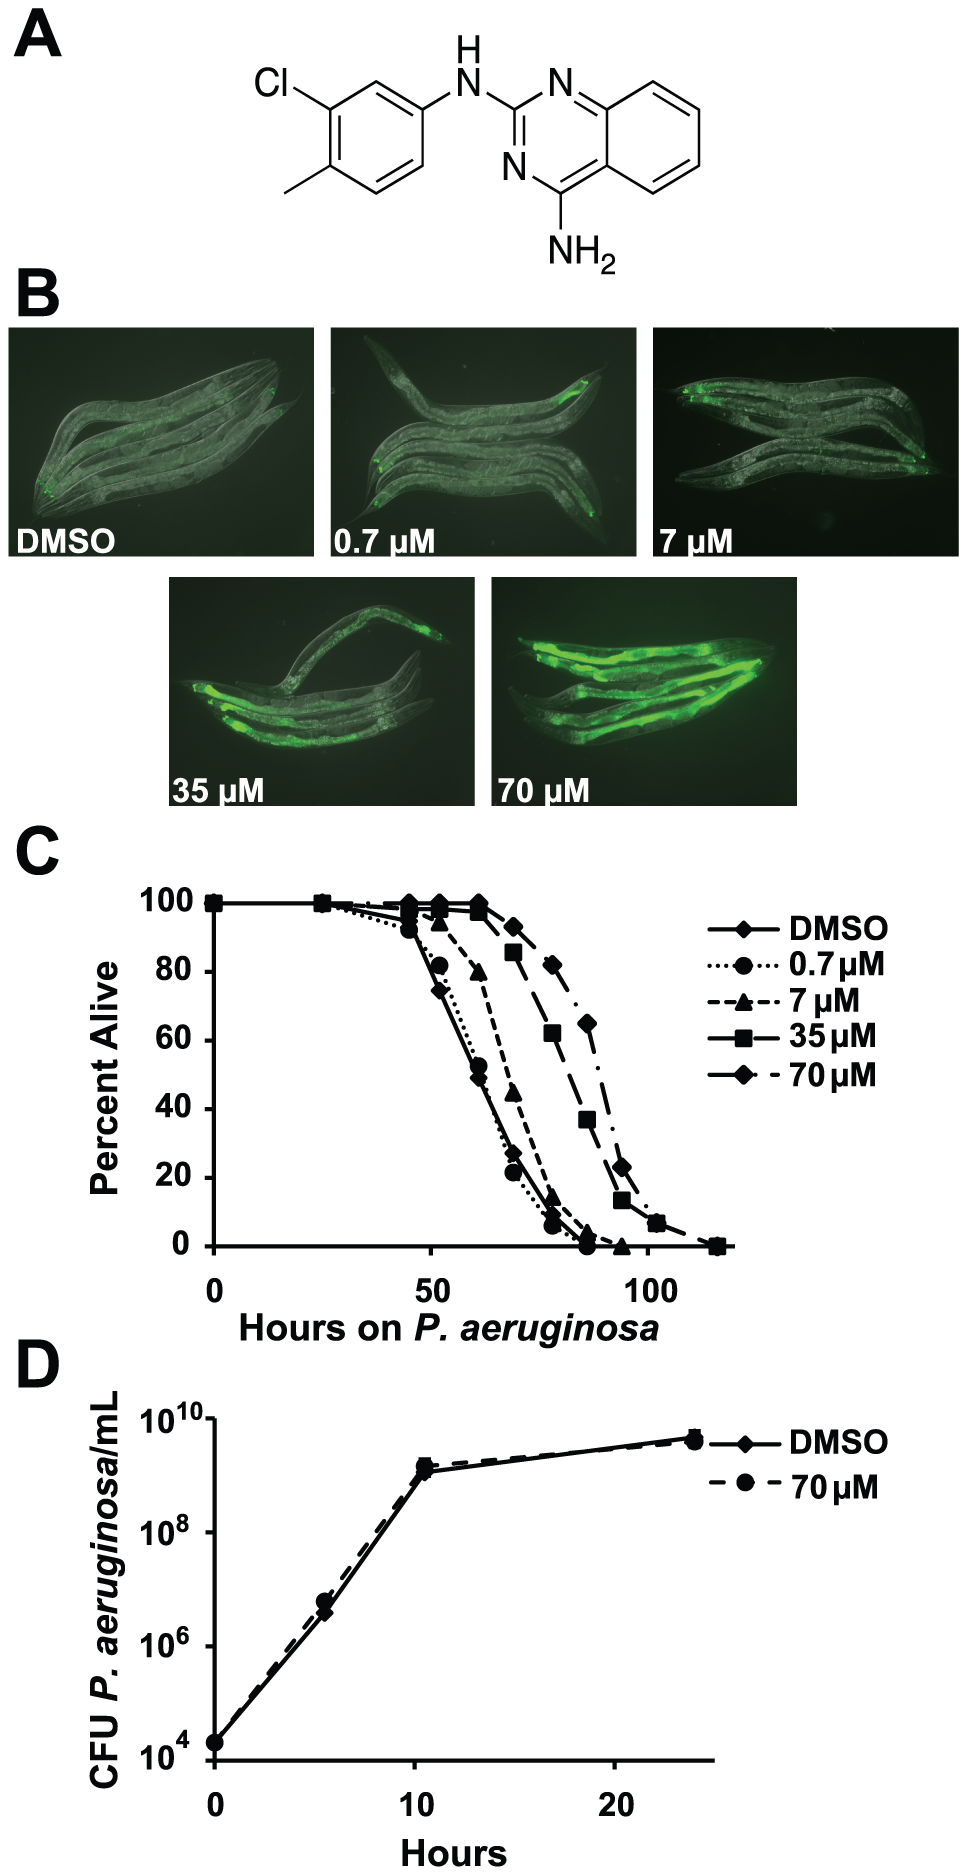 RPW-24 activates <i>F35E12.5::GFP</i> and prolongs the lifespan of <i>C. elegans</i> infected with <i>P. aeruginosa</i> without affect growth of the pathogen.